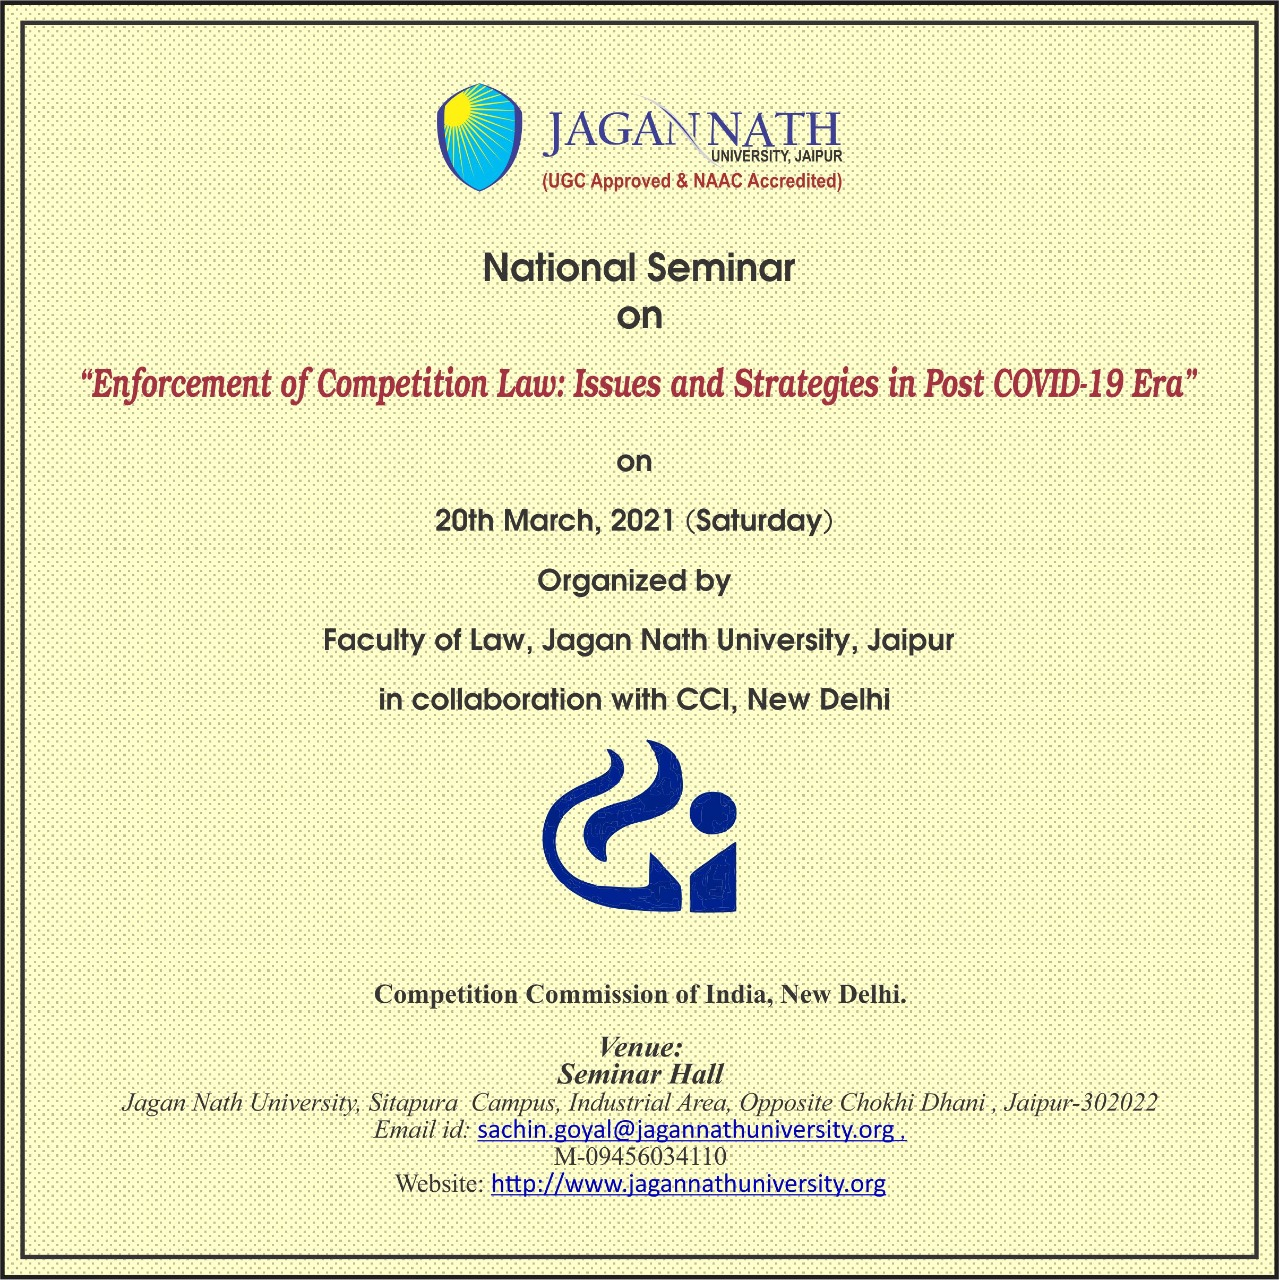 Jagan Nath University Seminar on Enforcement of Competition Law